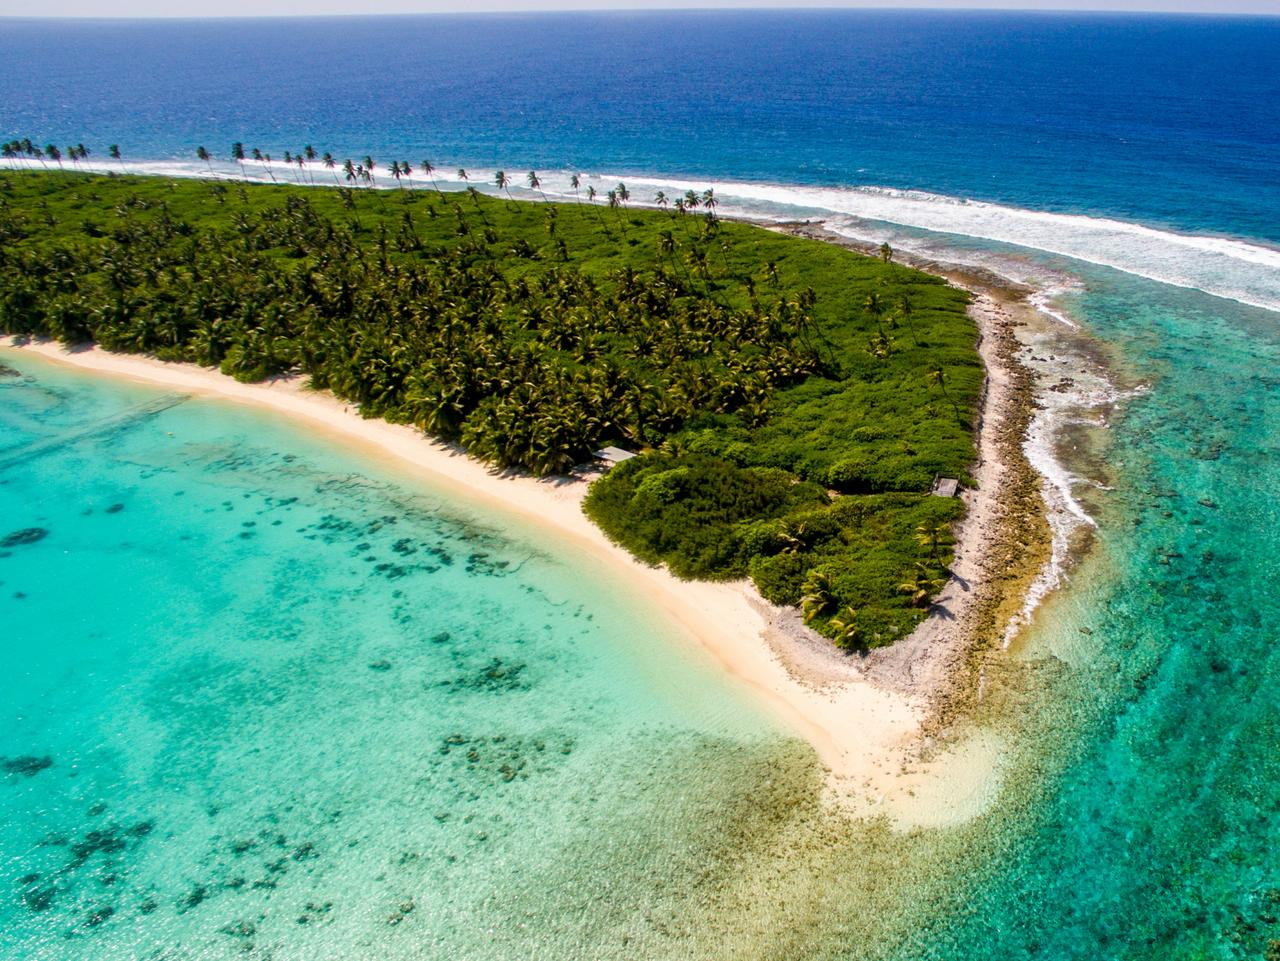 Australia's 101 Best Beaches includes Cossies Beach at Number 1